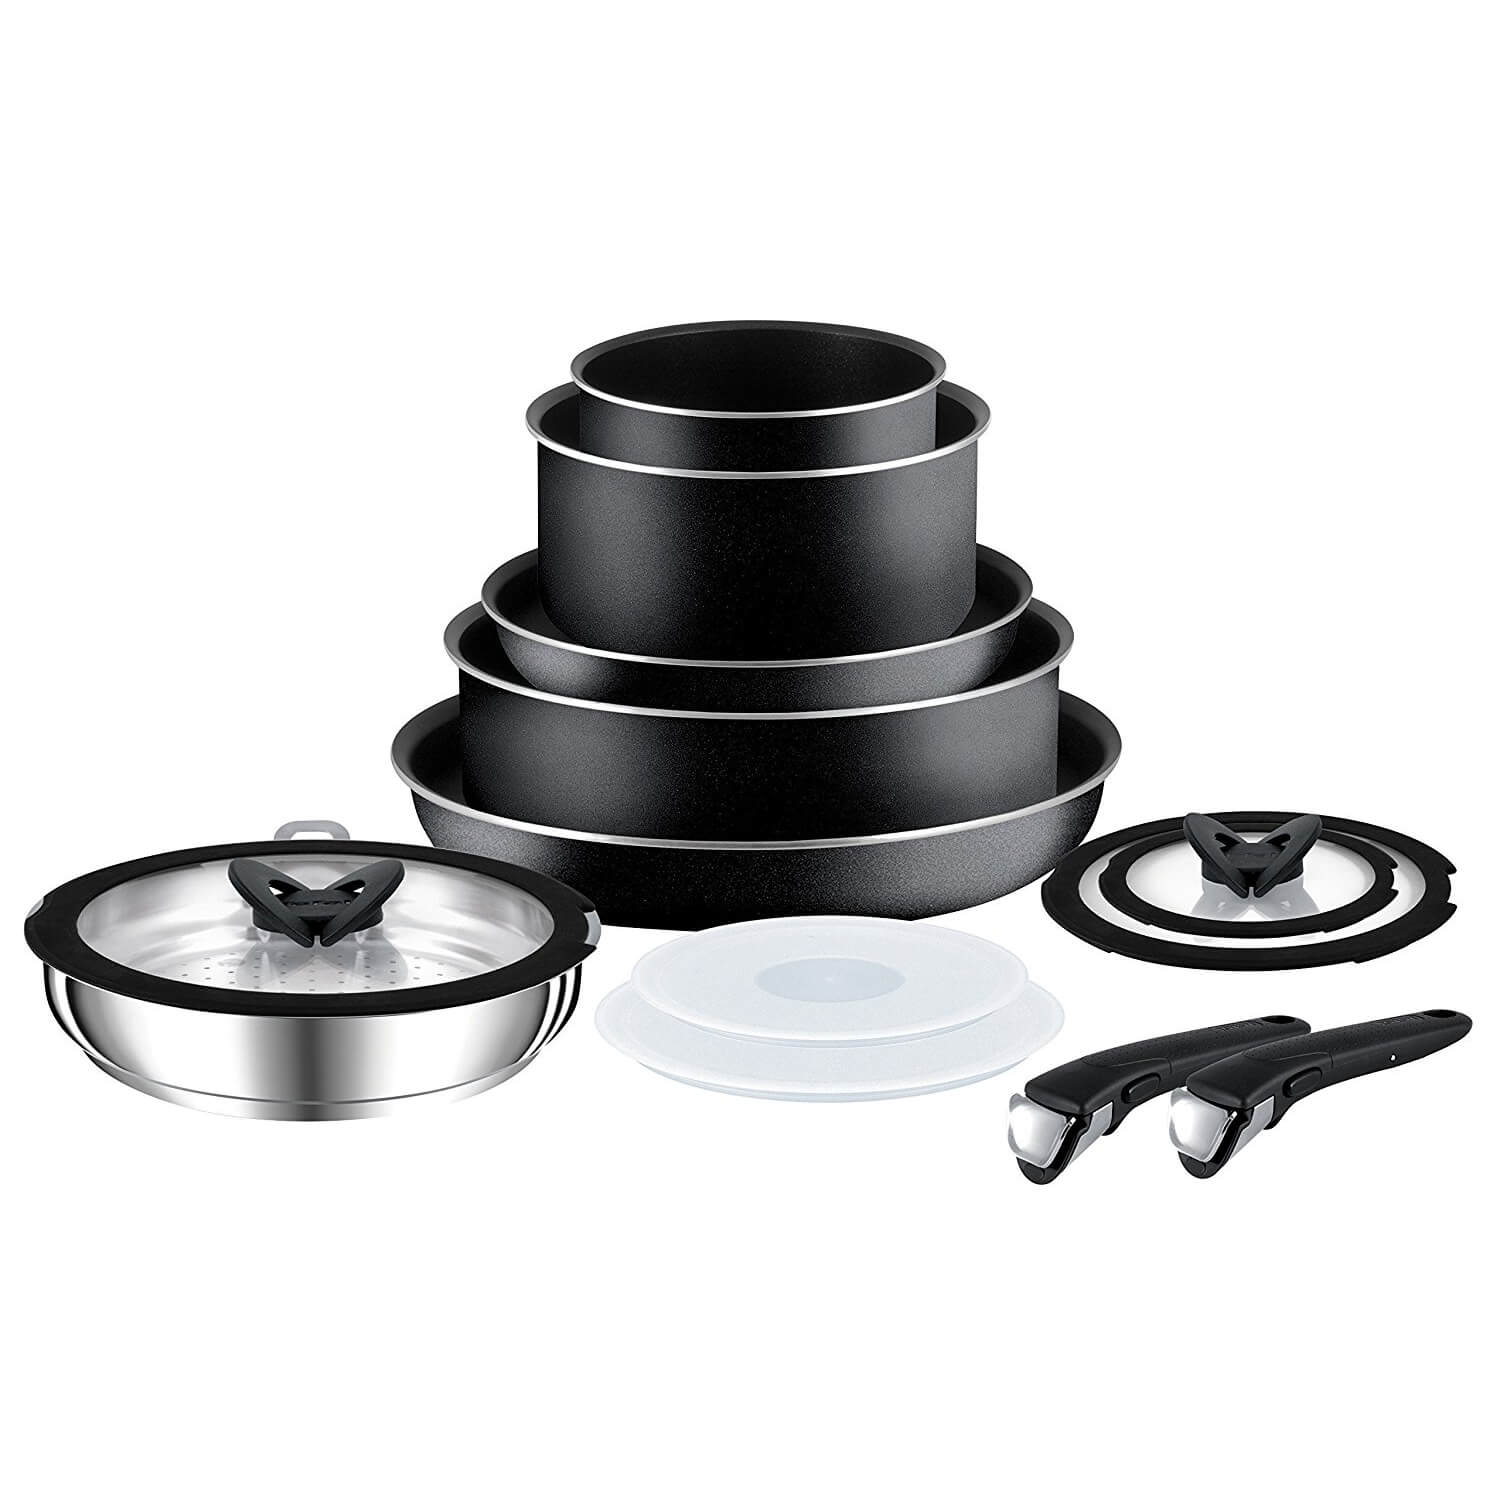 Tefal Pan Set Tefal Ingenio 13 Piece Complete Cookware Set Iwoot